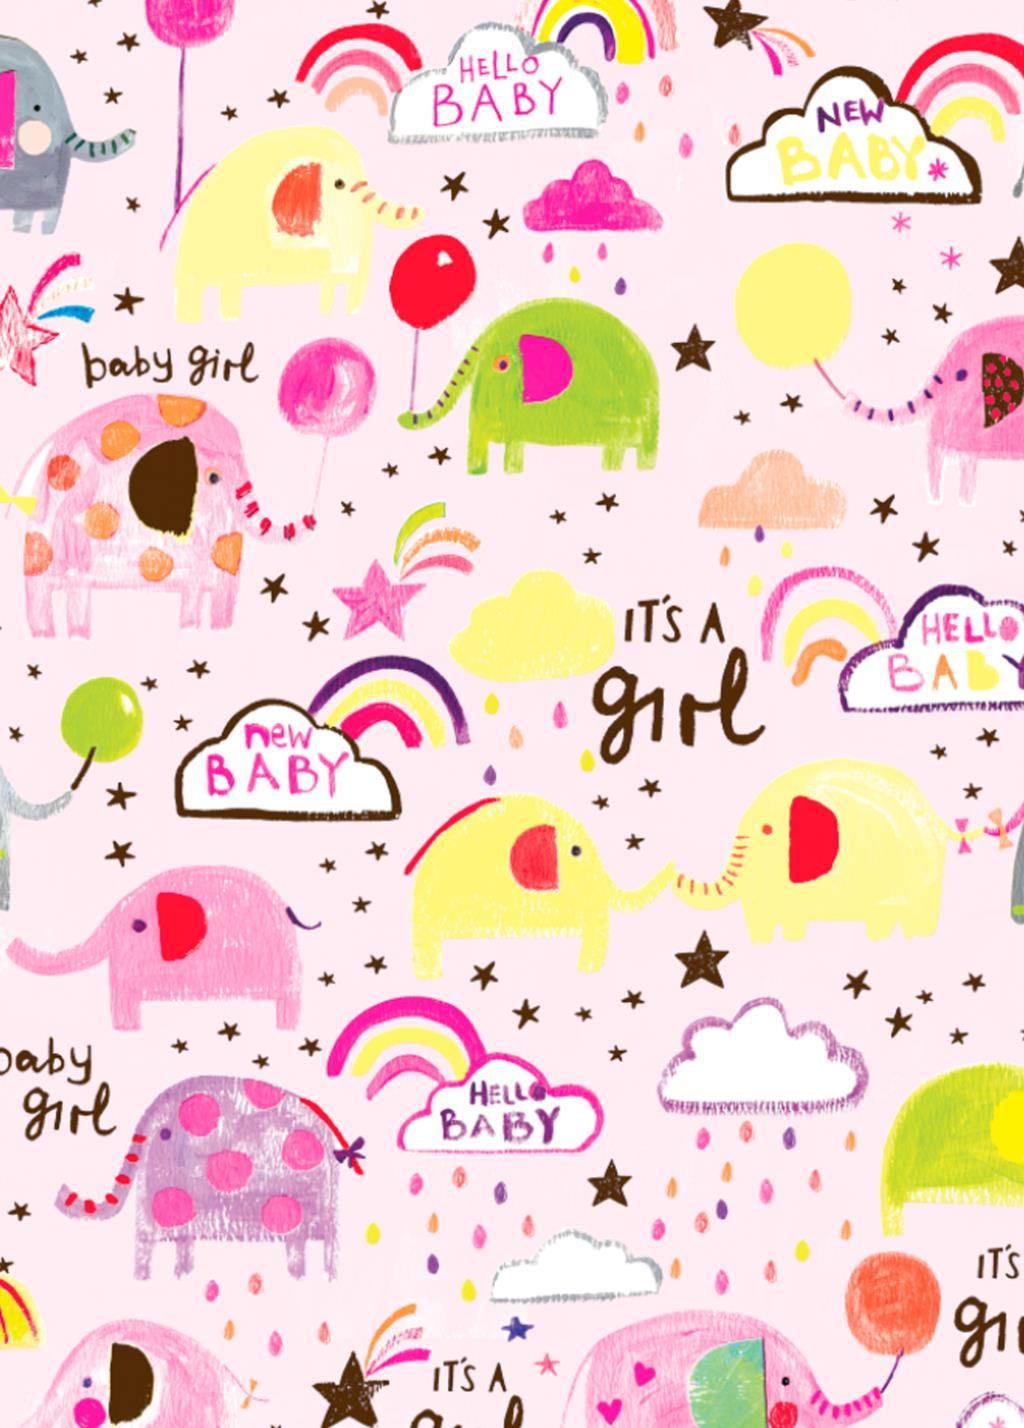 It's A Girl Wrapping Paper - 2 SHEETS Of LUXURY Gift WRAP - RECYCLABLE Wrap